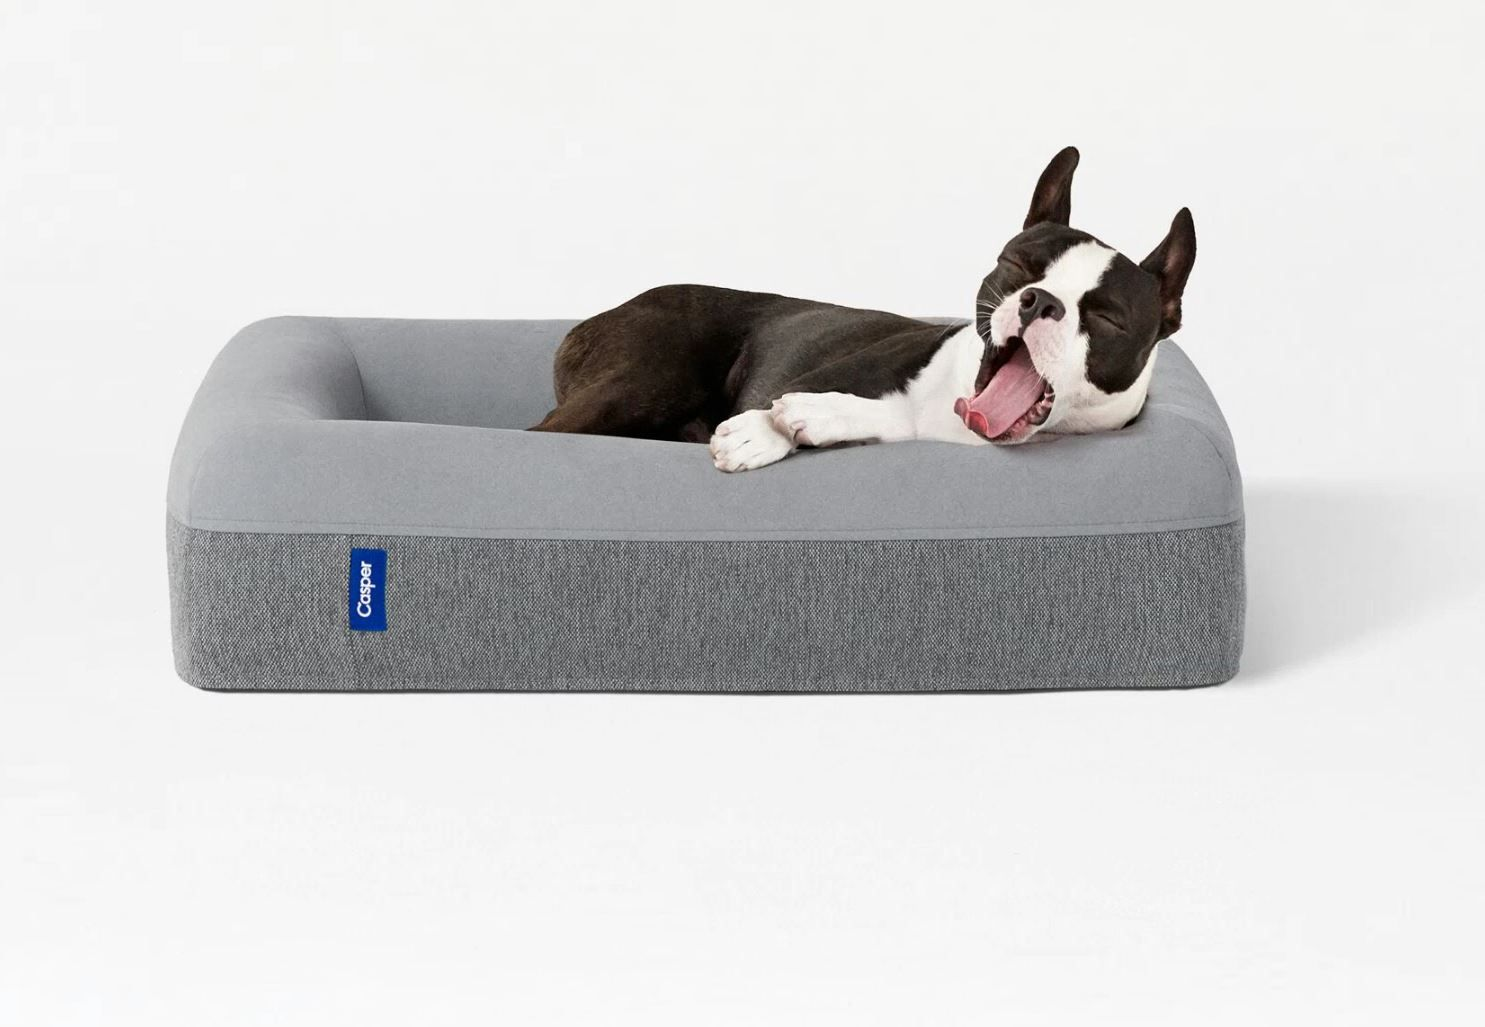 The best new luxury holiday gifts for dogs